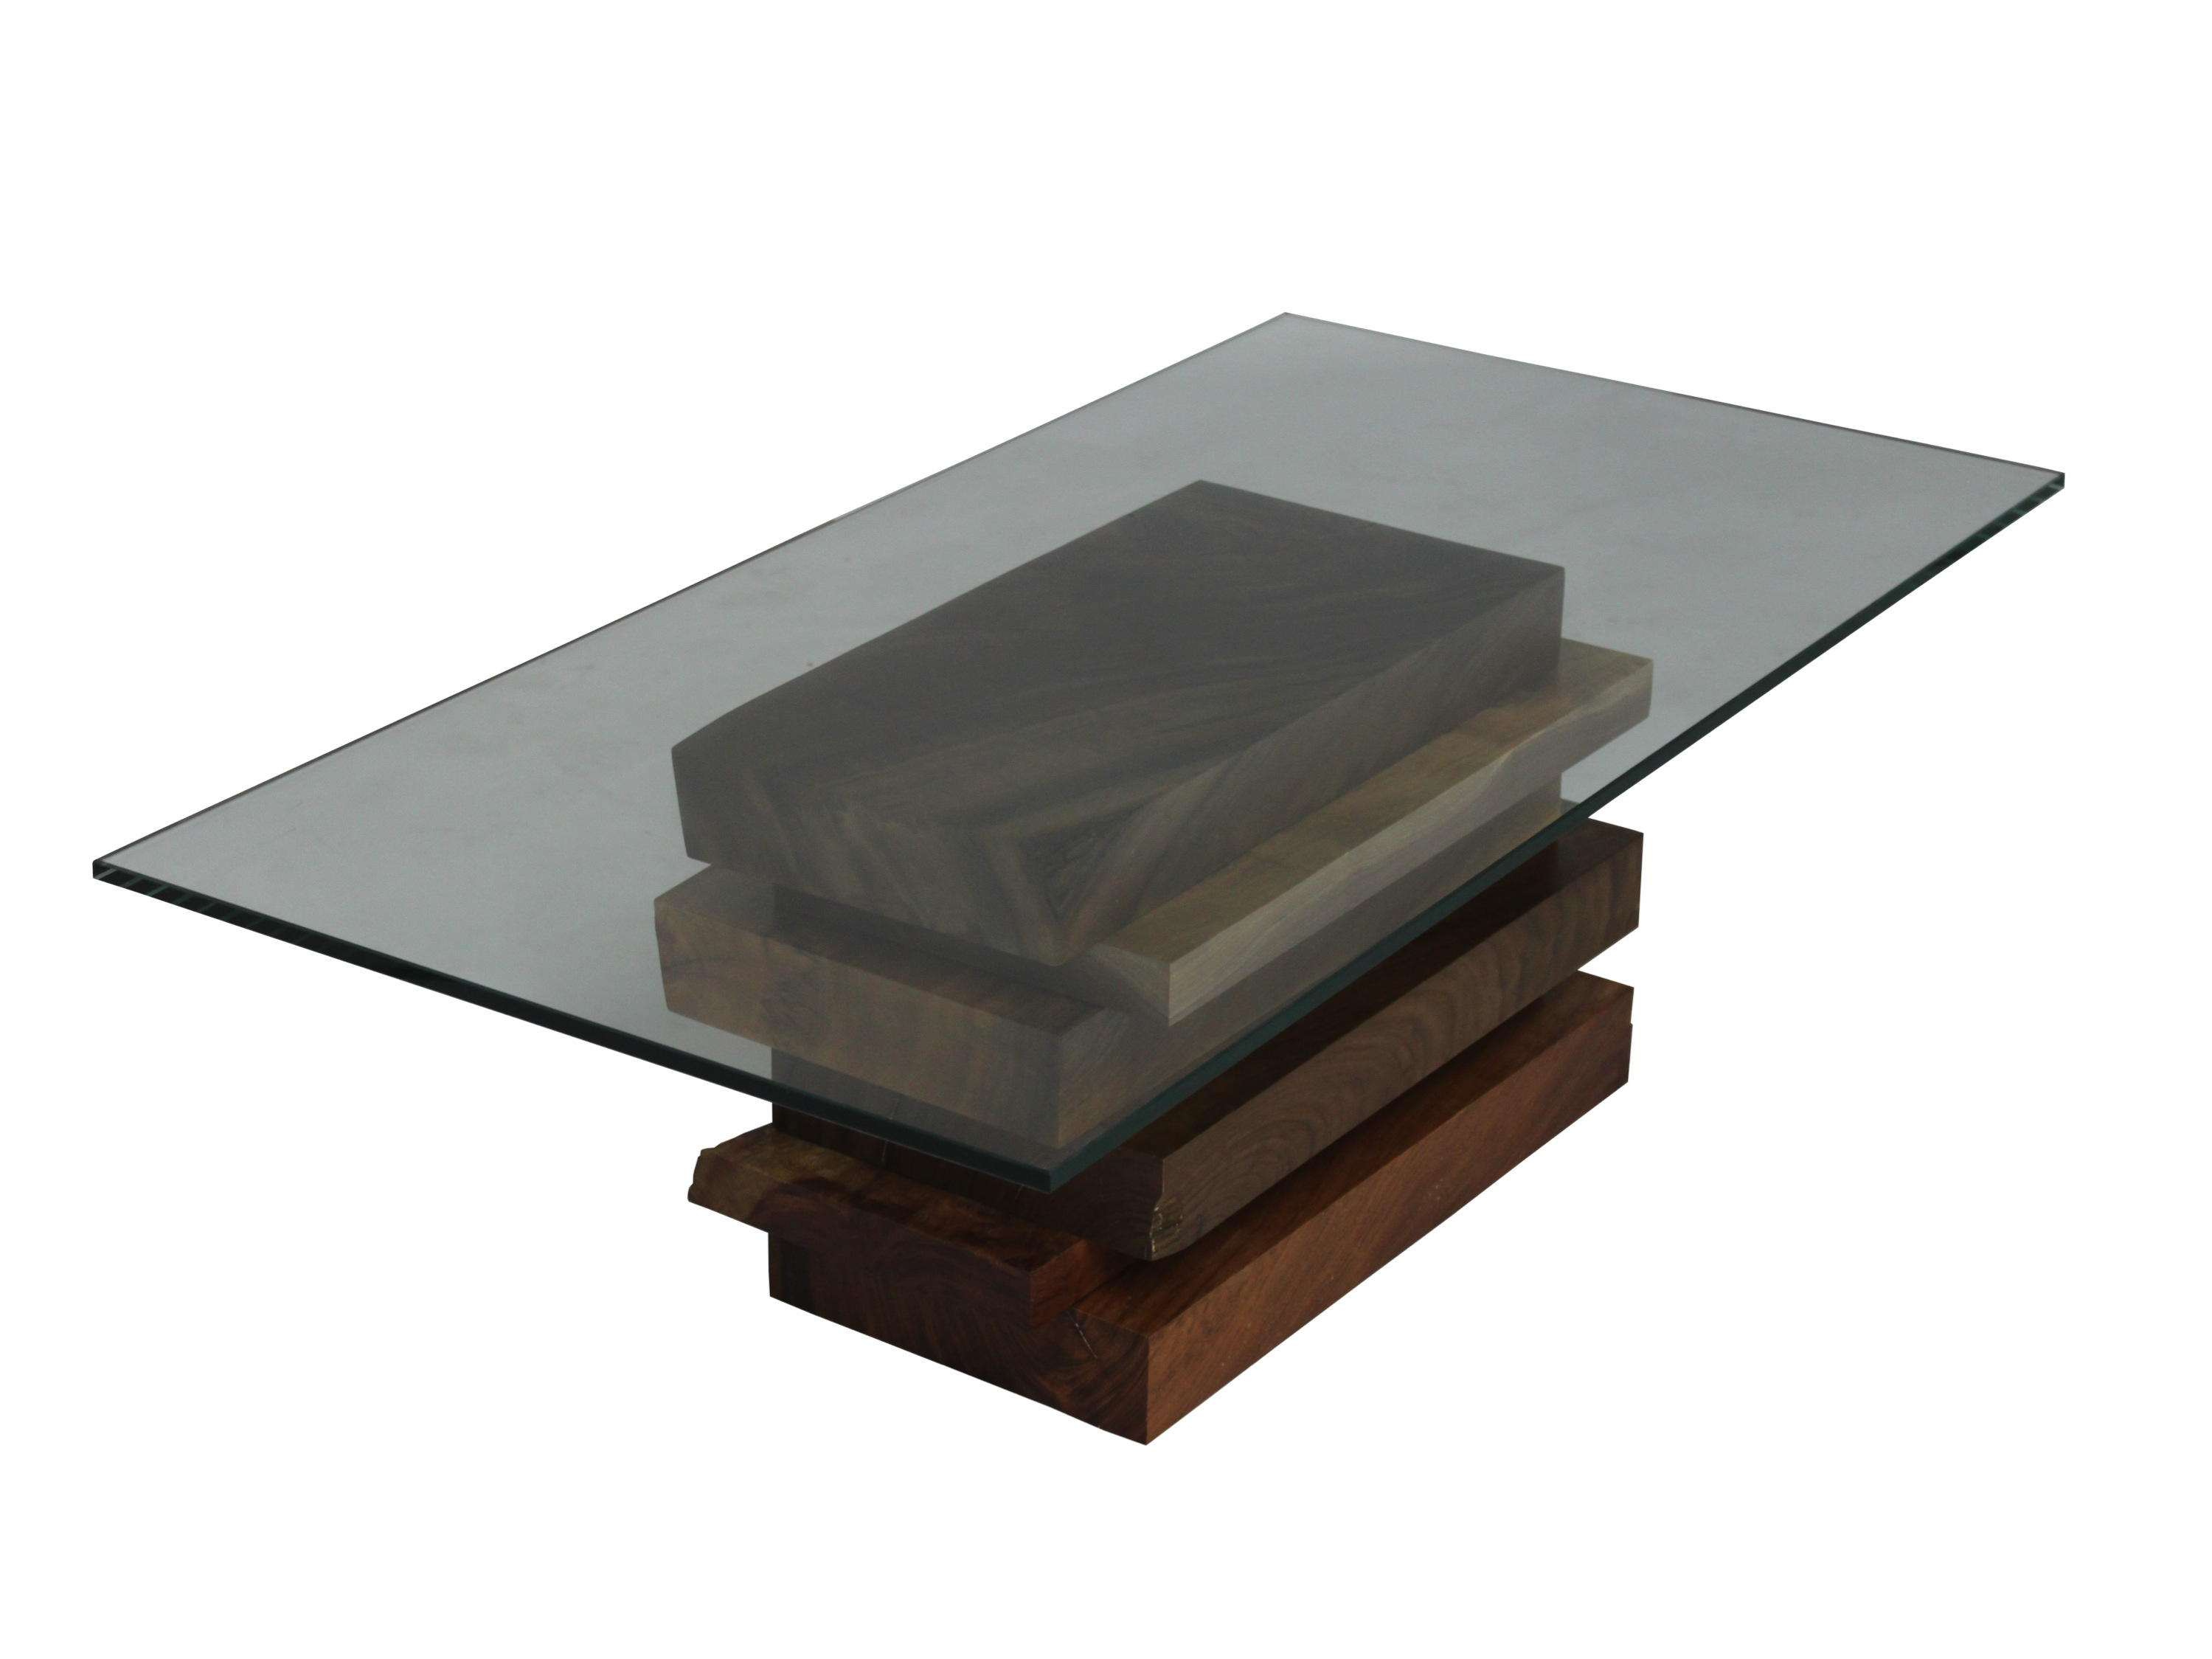 wooden coffee table glass top photo - 4